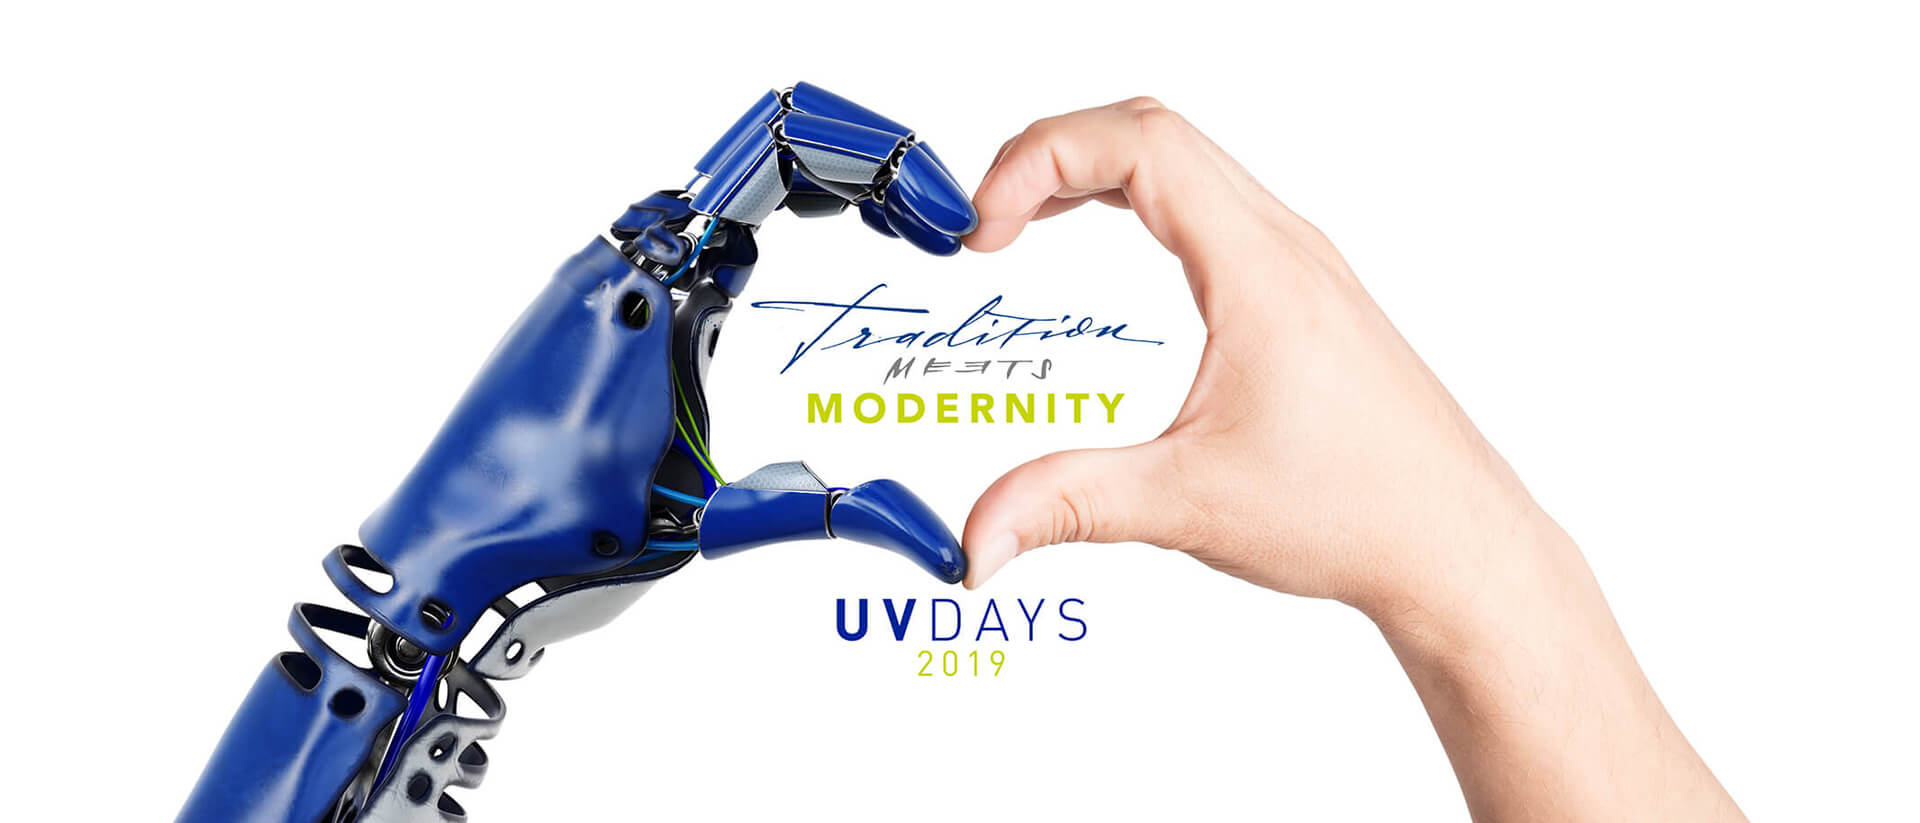 Visit DG press at the UV Days 2019